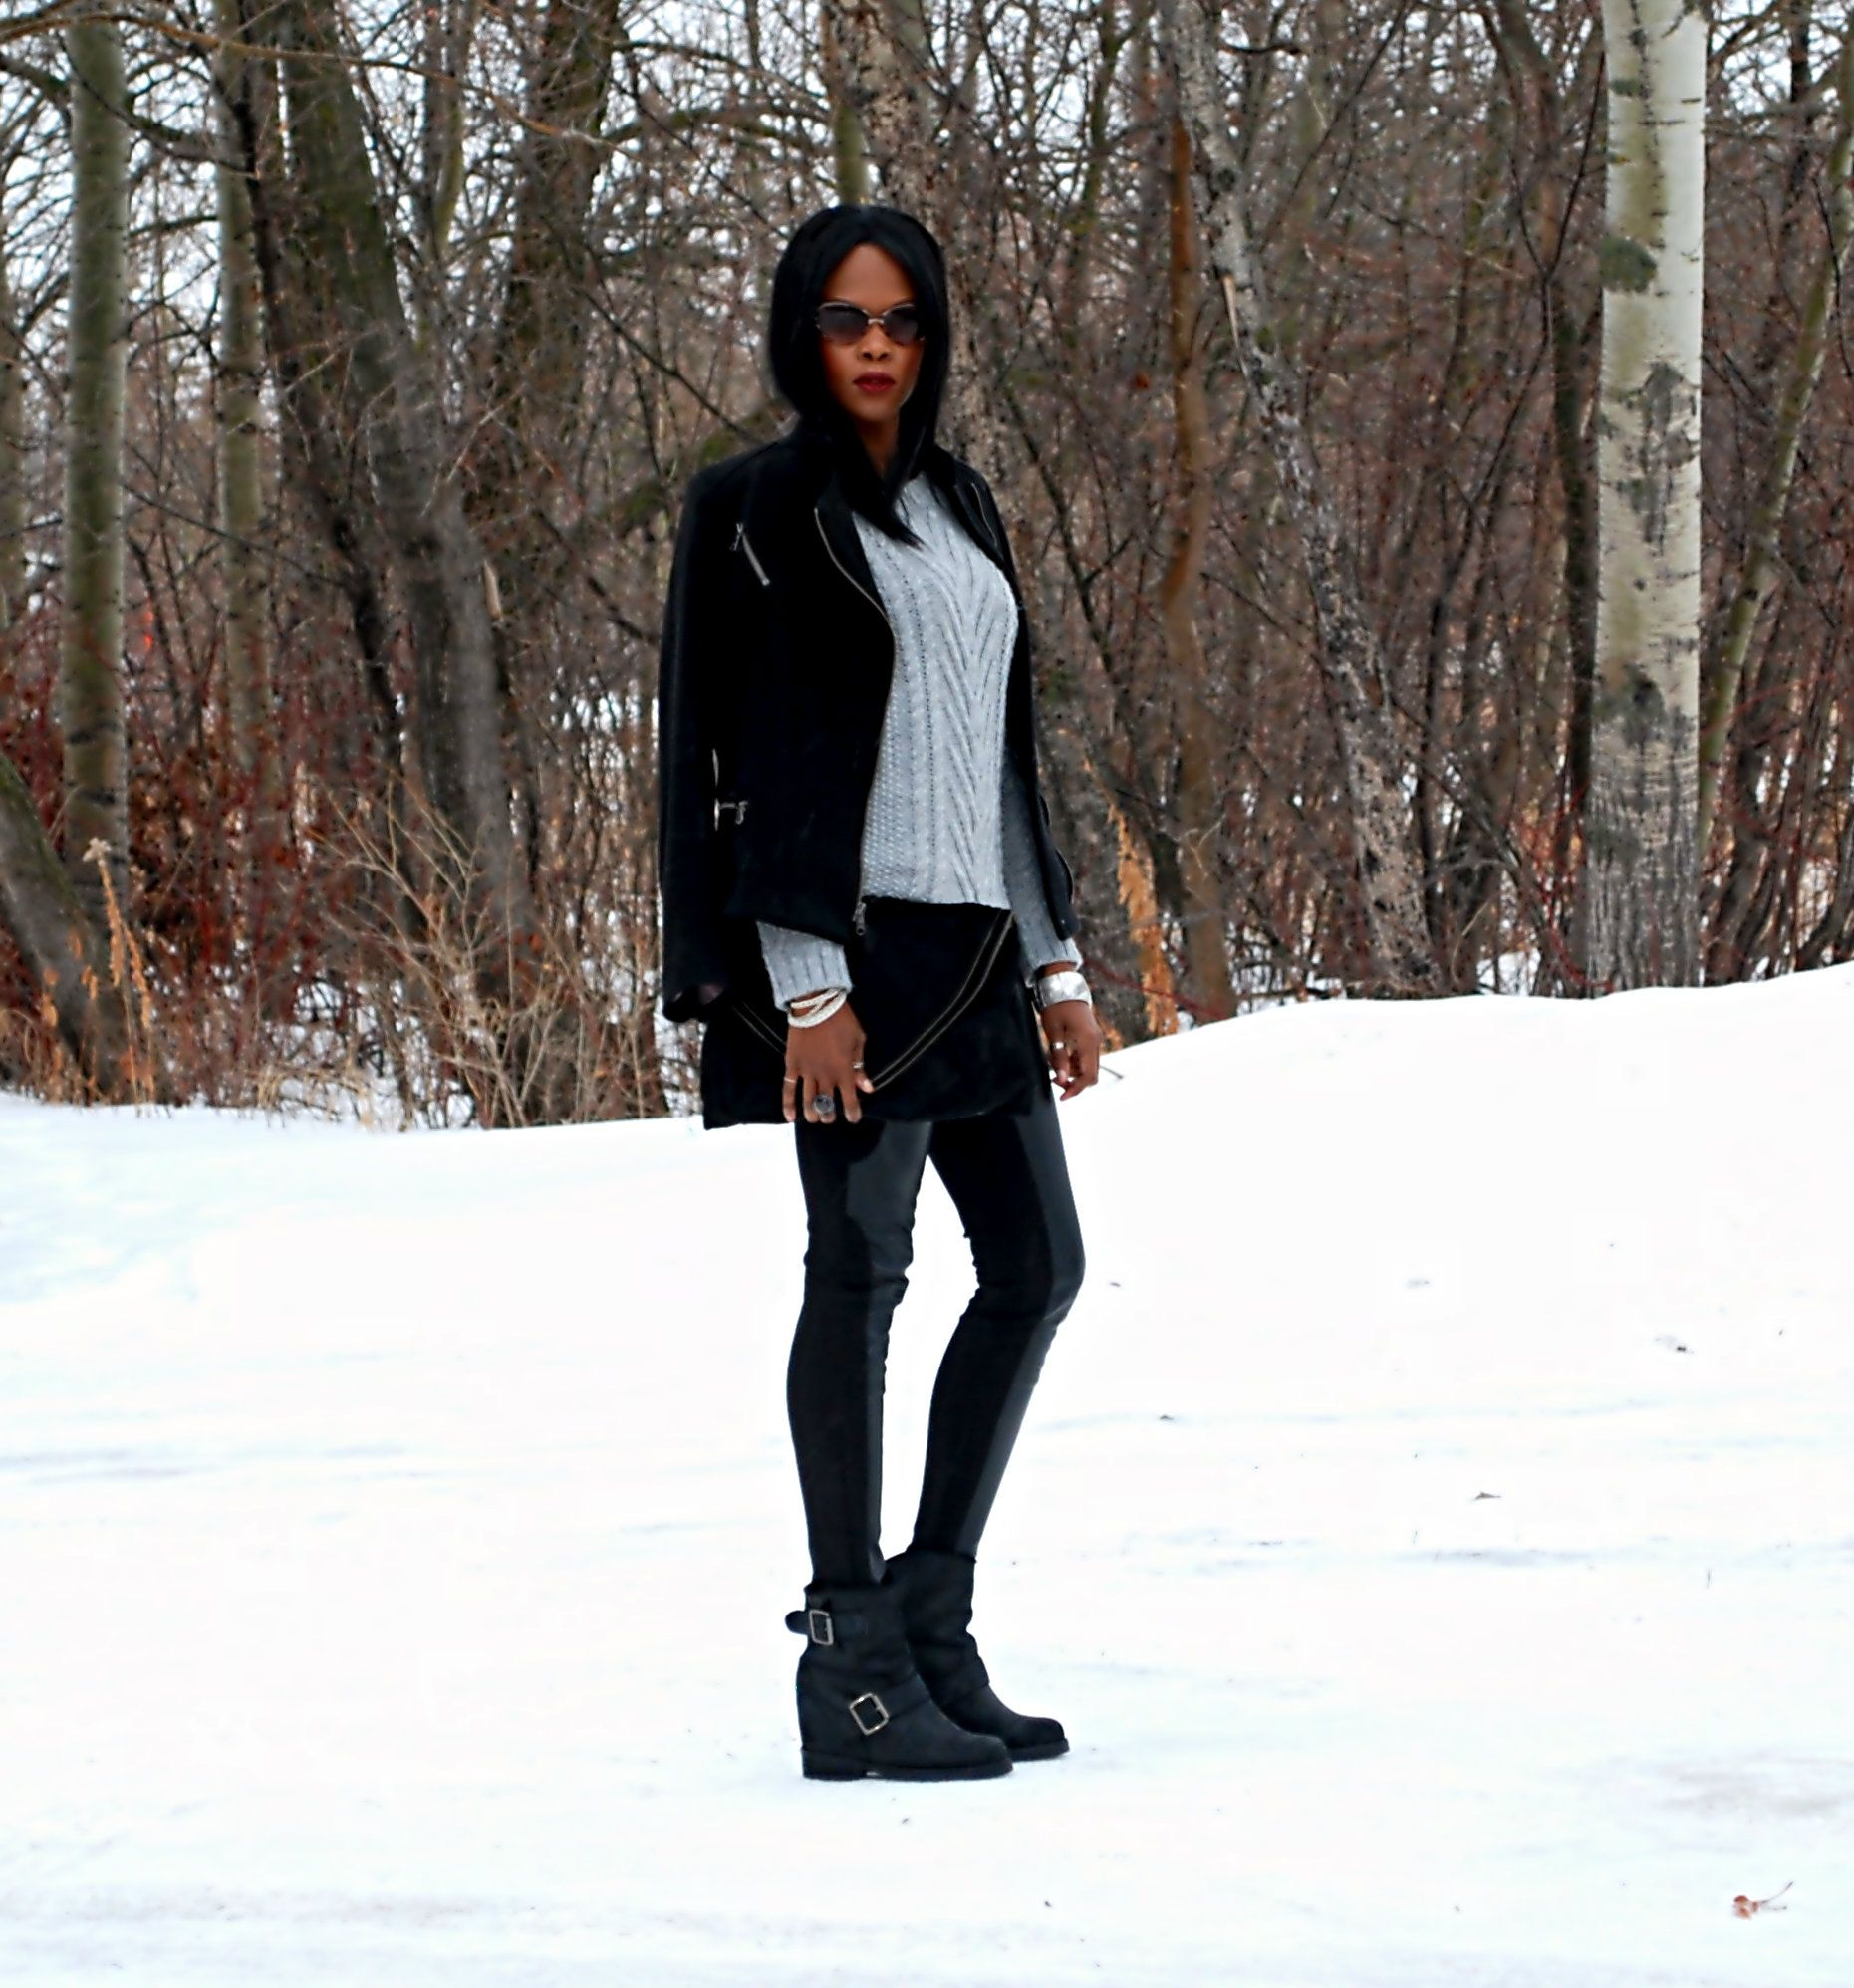 Chunky knits  & leather leggings over on stylemydreams.wordpress.com #winter #chunkyknits #sweaterweather #fashion #fashionblogger #style